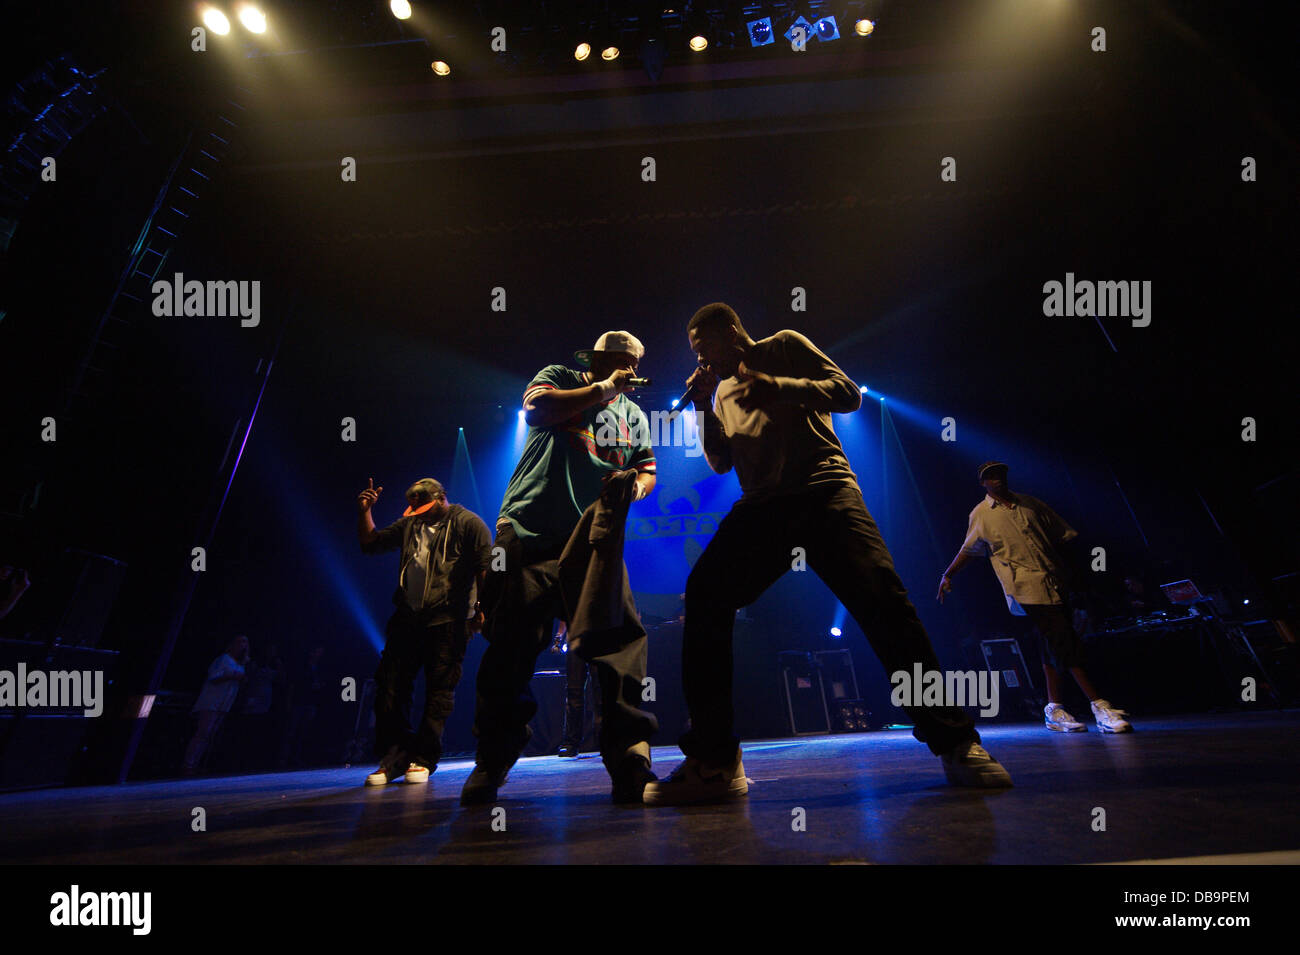 Manchester, UK. 25th July 2013. Wu-Tang Clan are back! The hip-hop legends to reunite for one-off dates in the UK - Stock Image